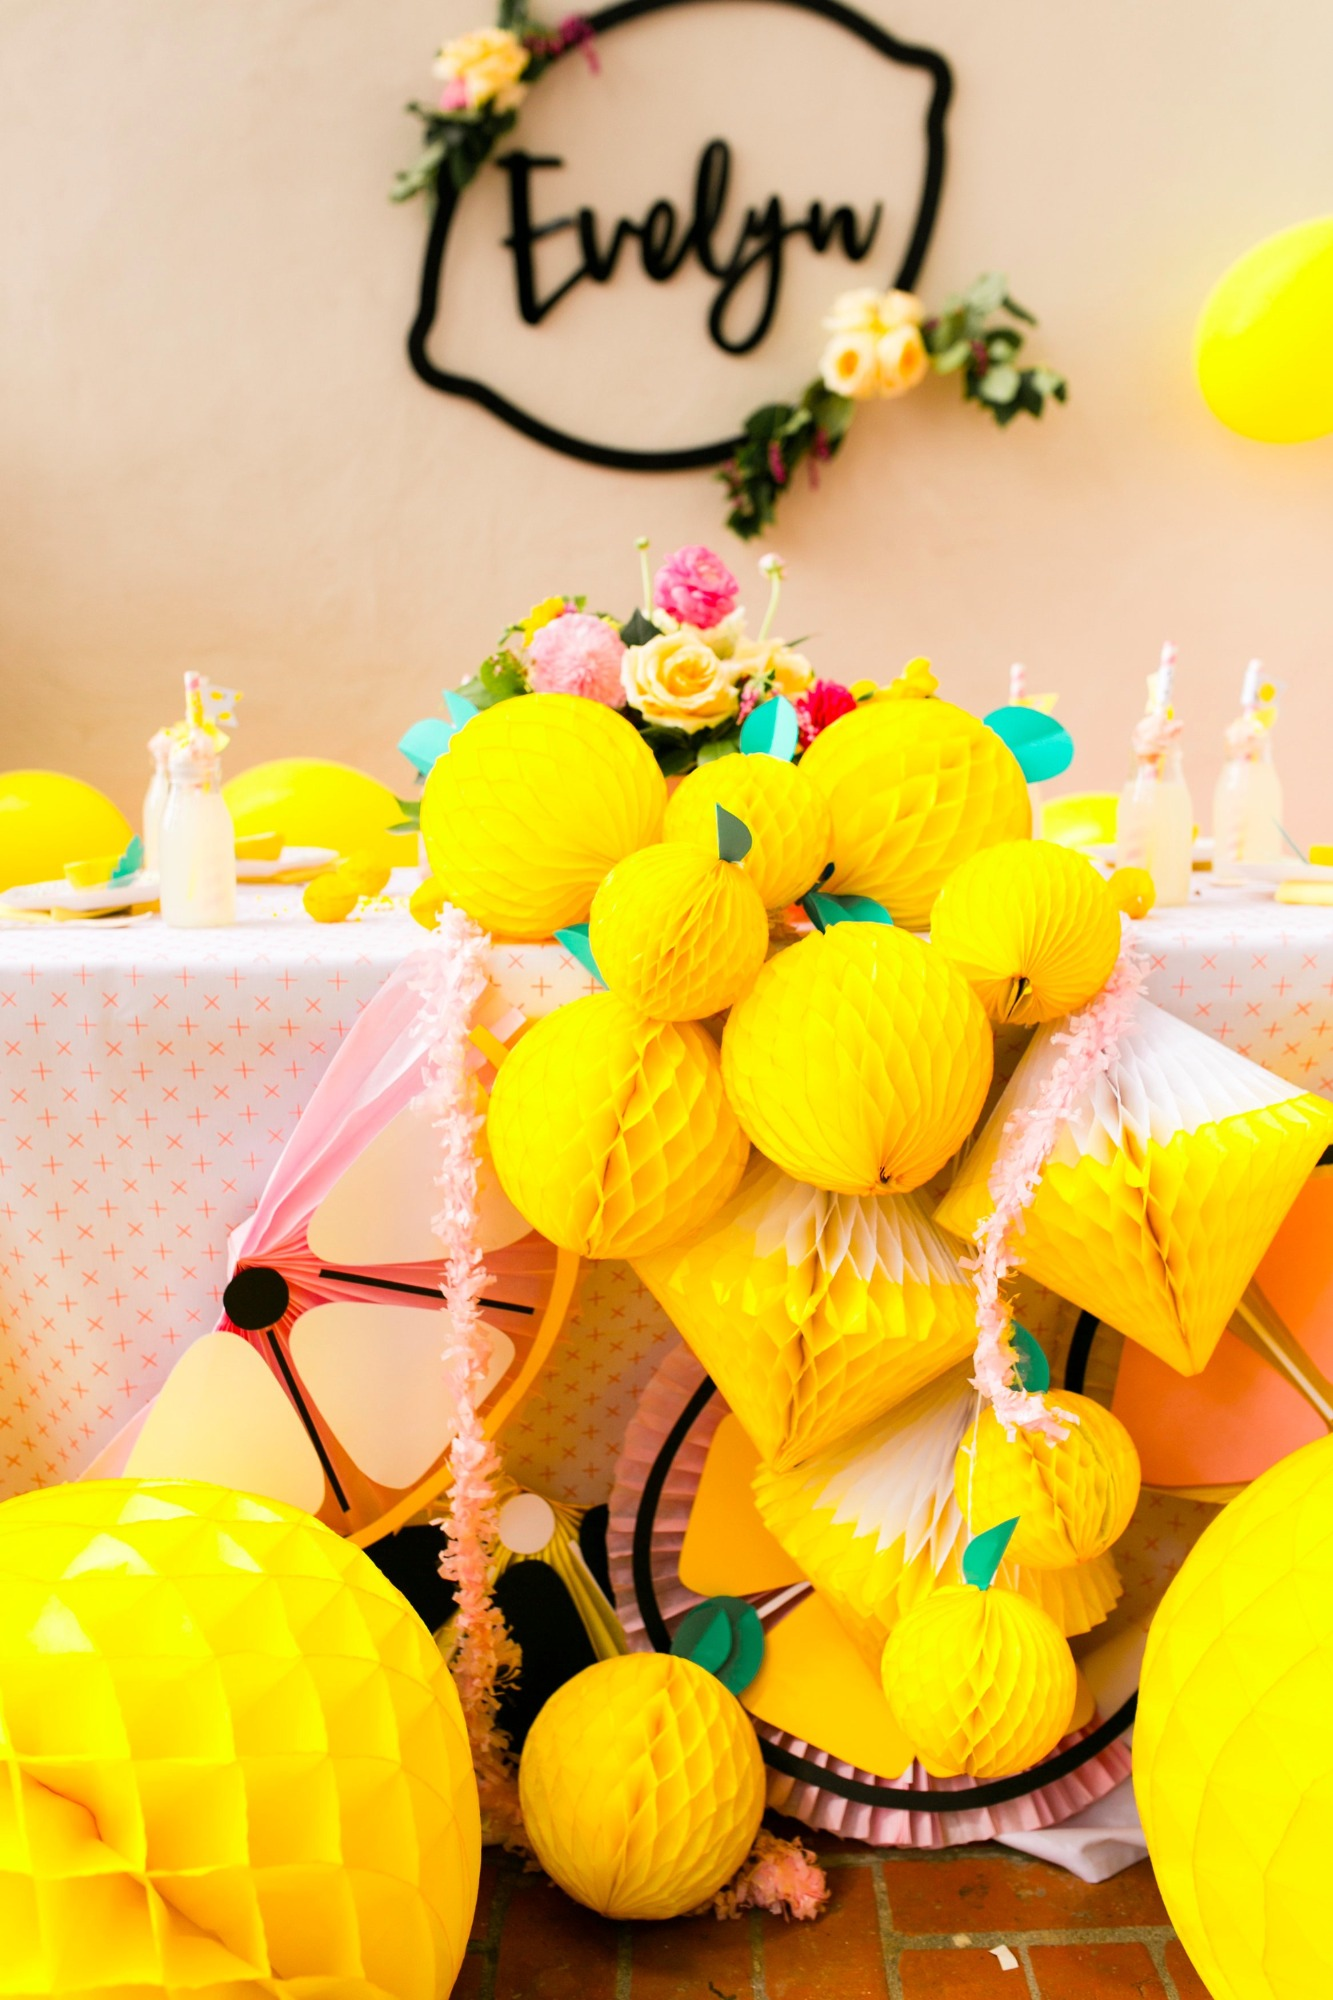 Lemon honeycomb decor from Lemonade Stand Birthday Party by Forrest and J. | Black Twine